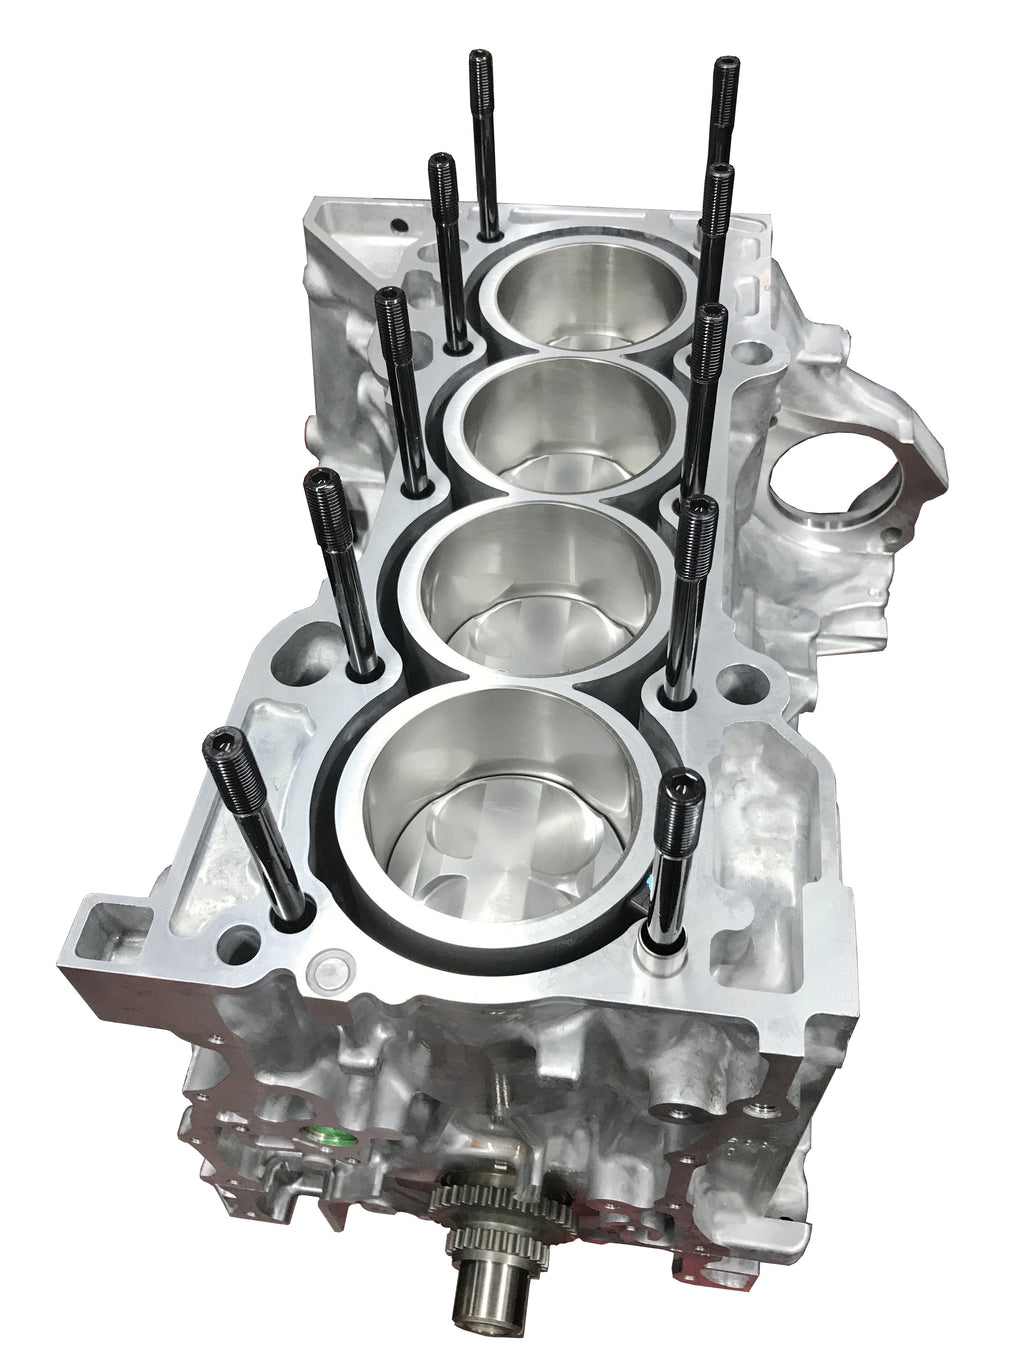 DC TURBO K24 Street Performance Short Block